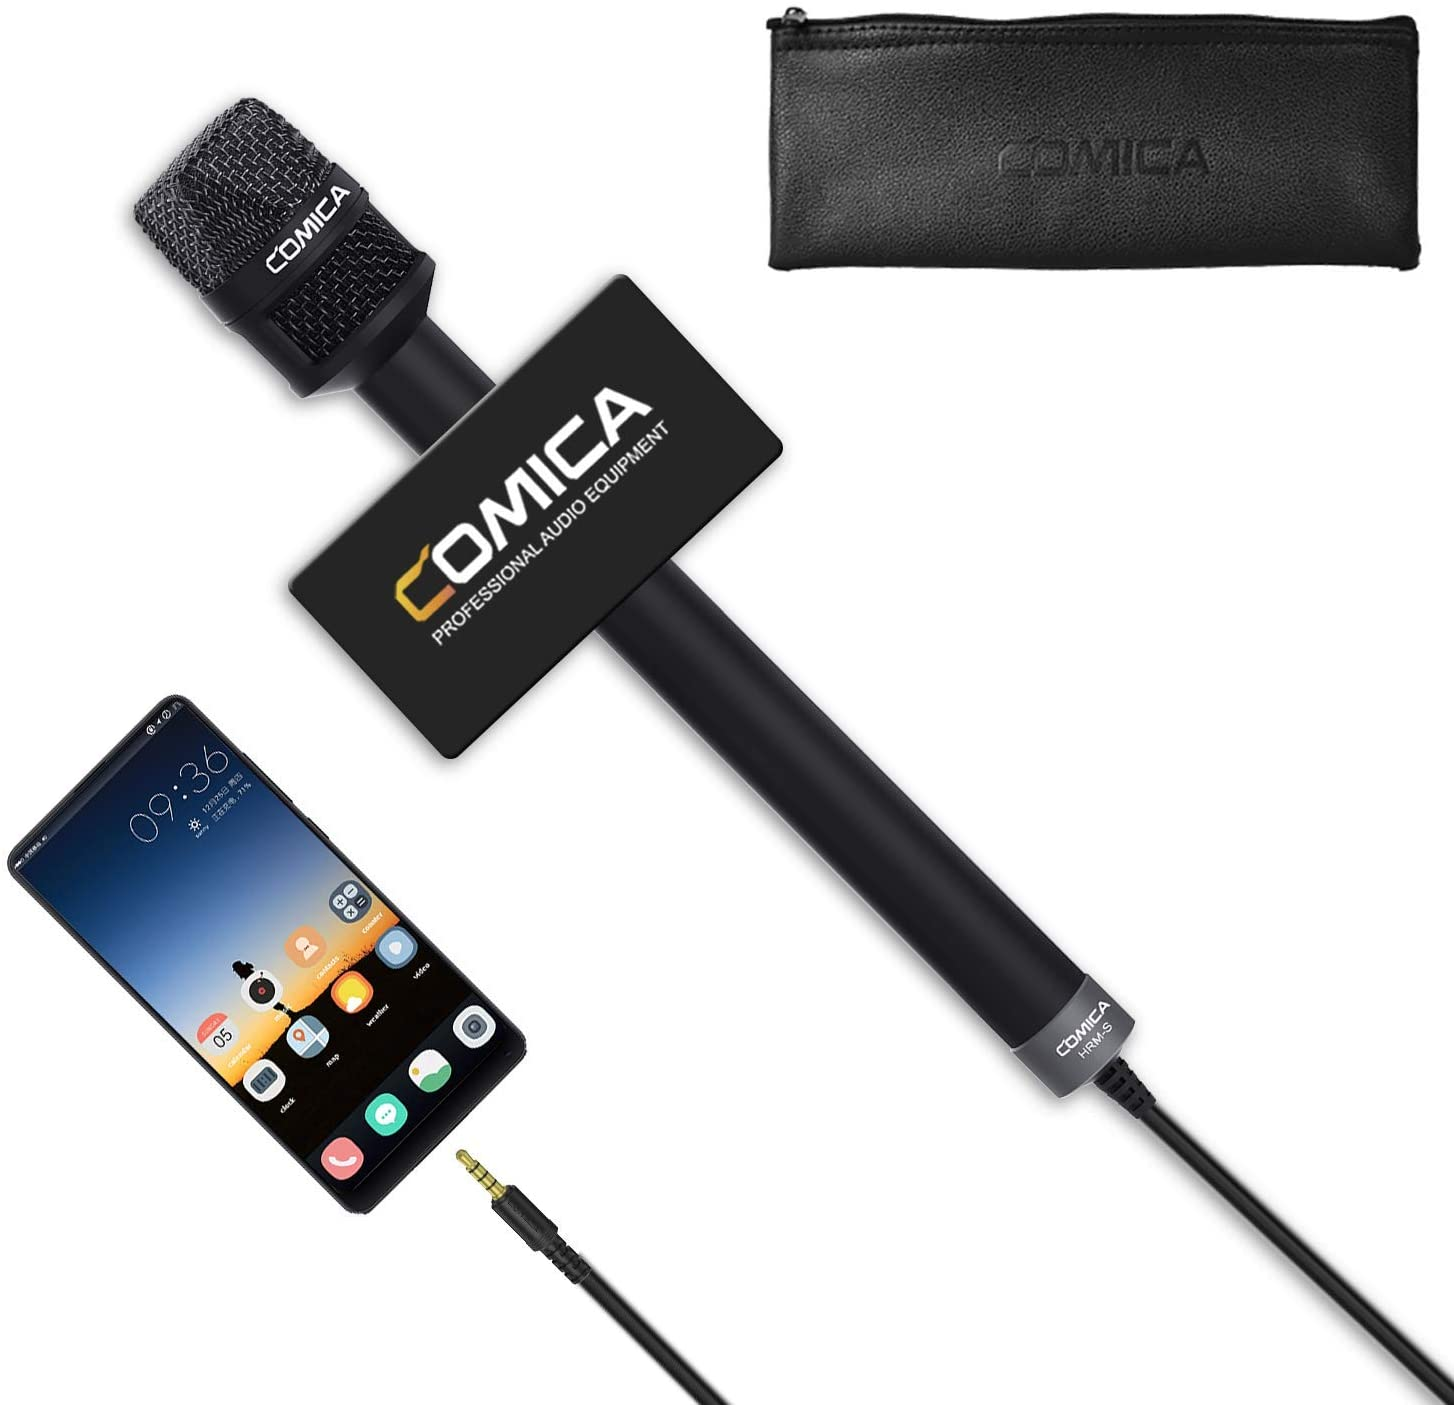 Handheld Microphone for Max 77% Selling and selling OFF Smartphones COMICA C Cardioid CVM-HRM-S